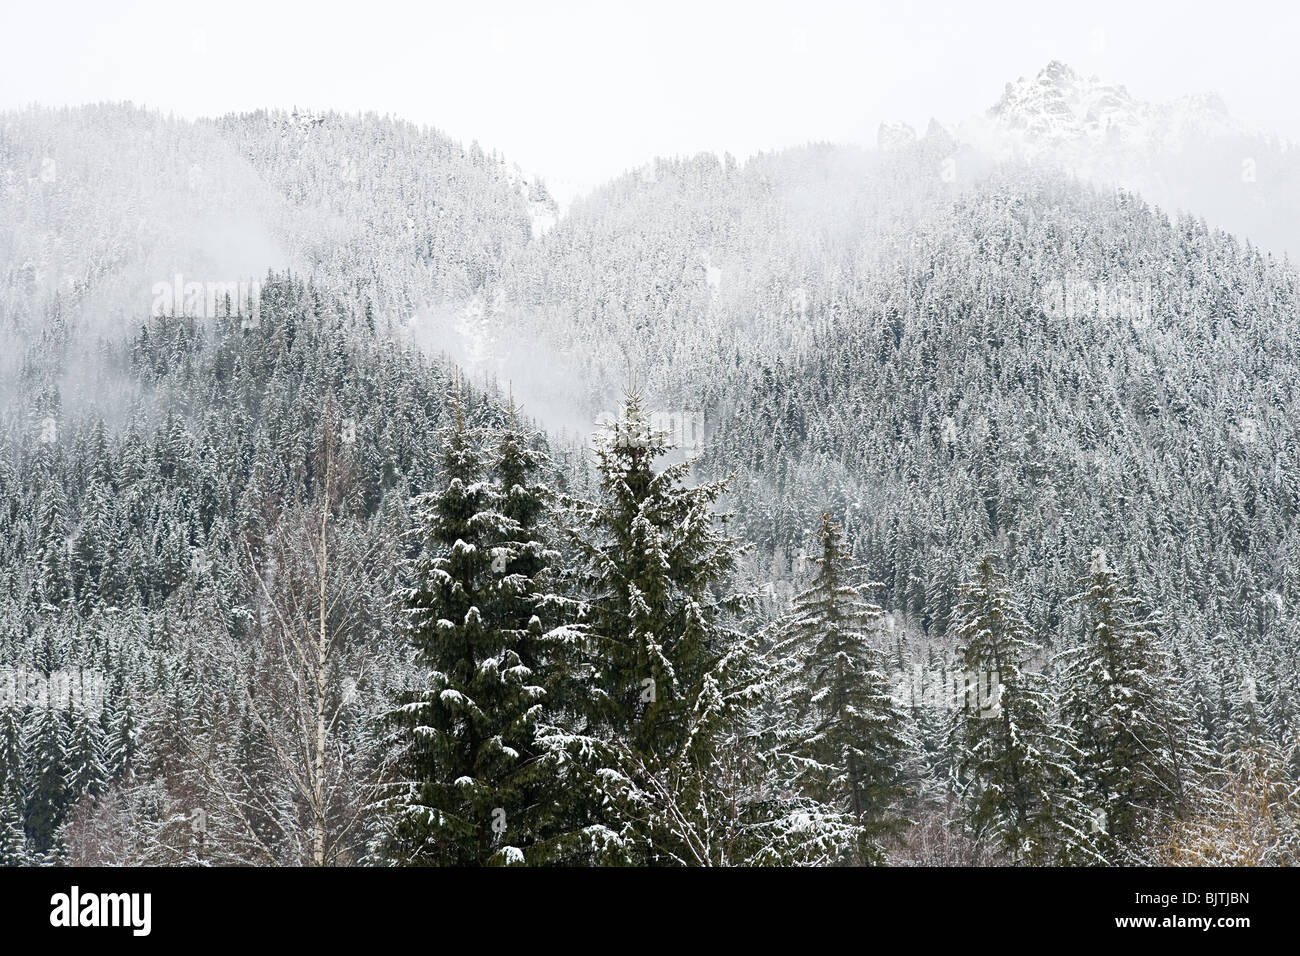 Trees covered in snow in french alps - Stock Image